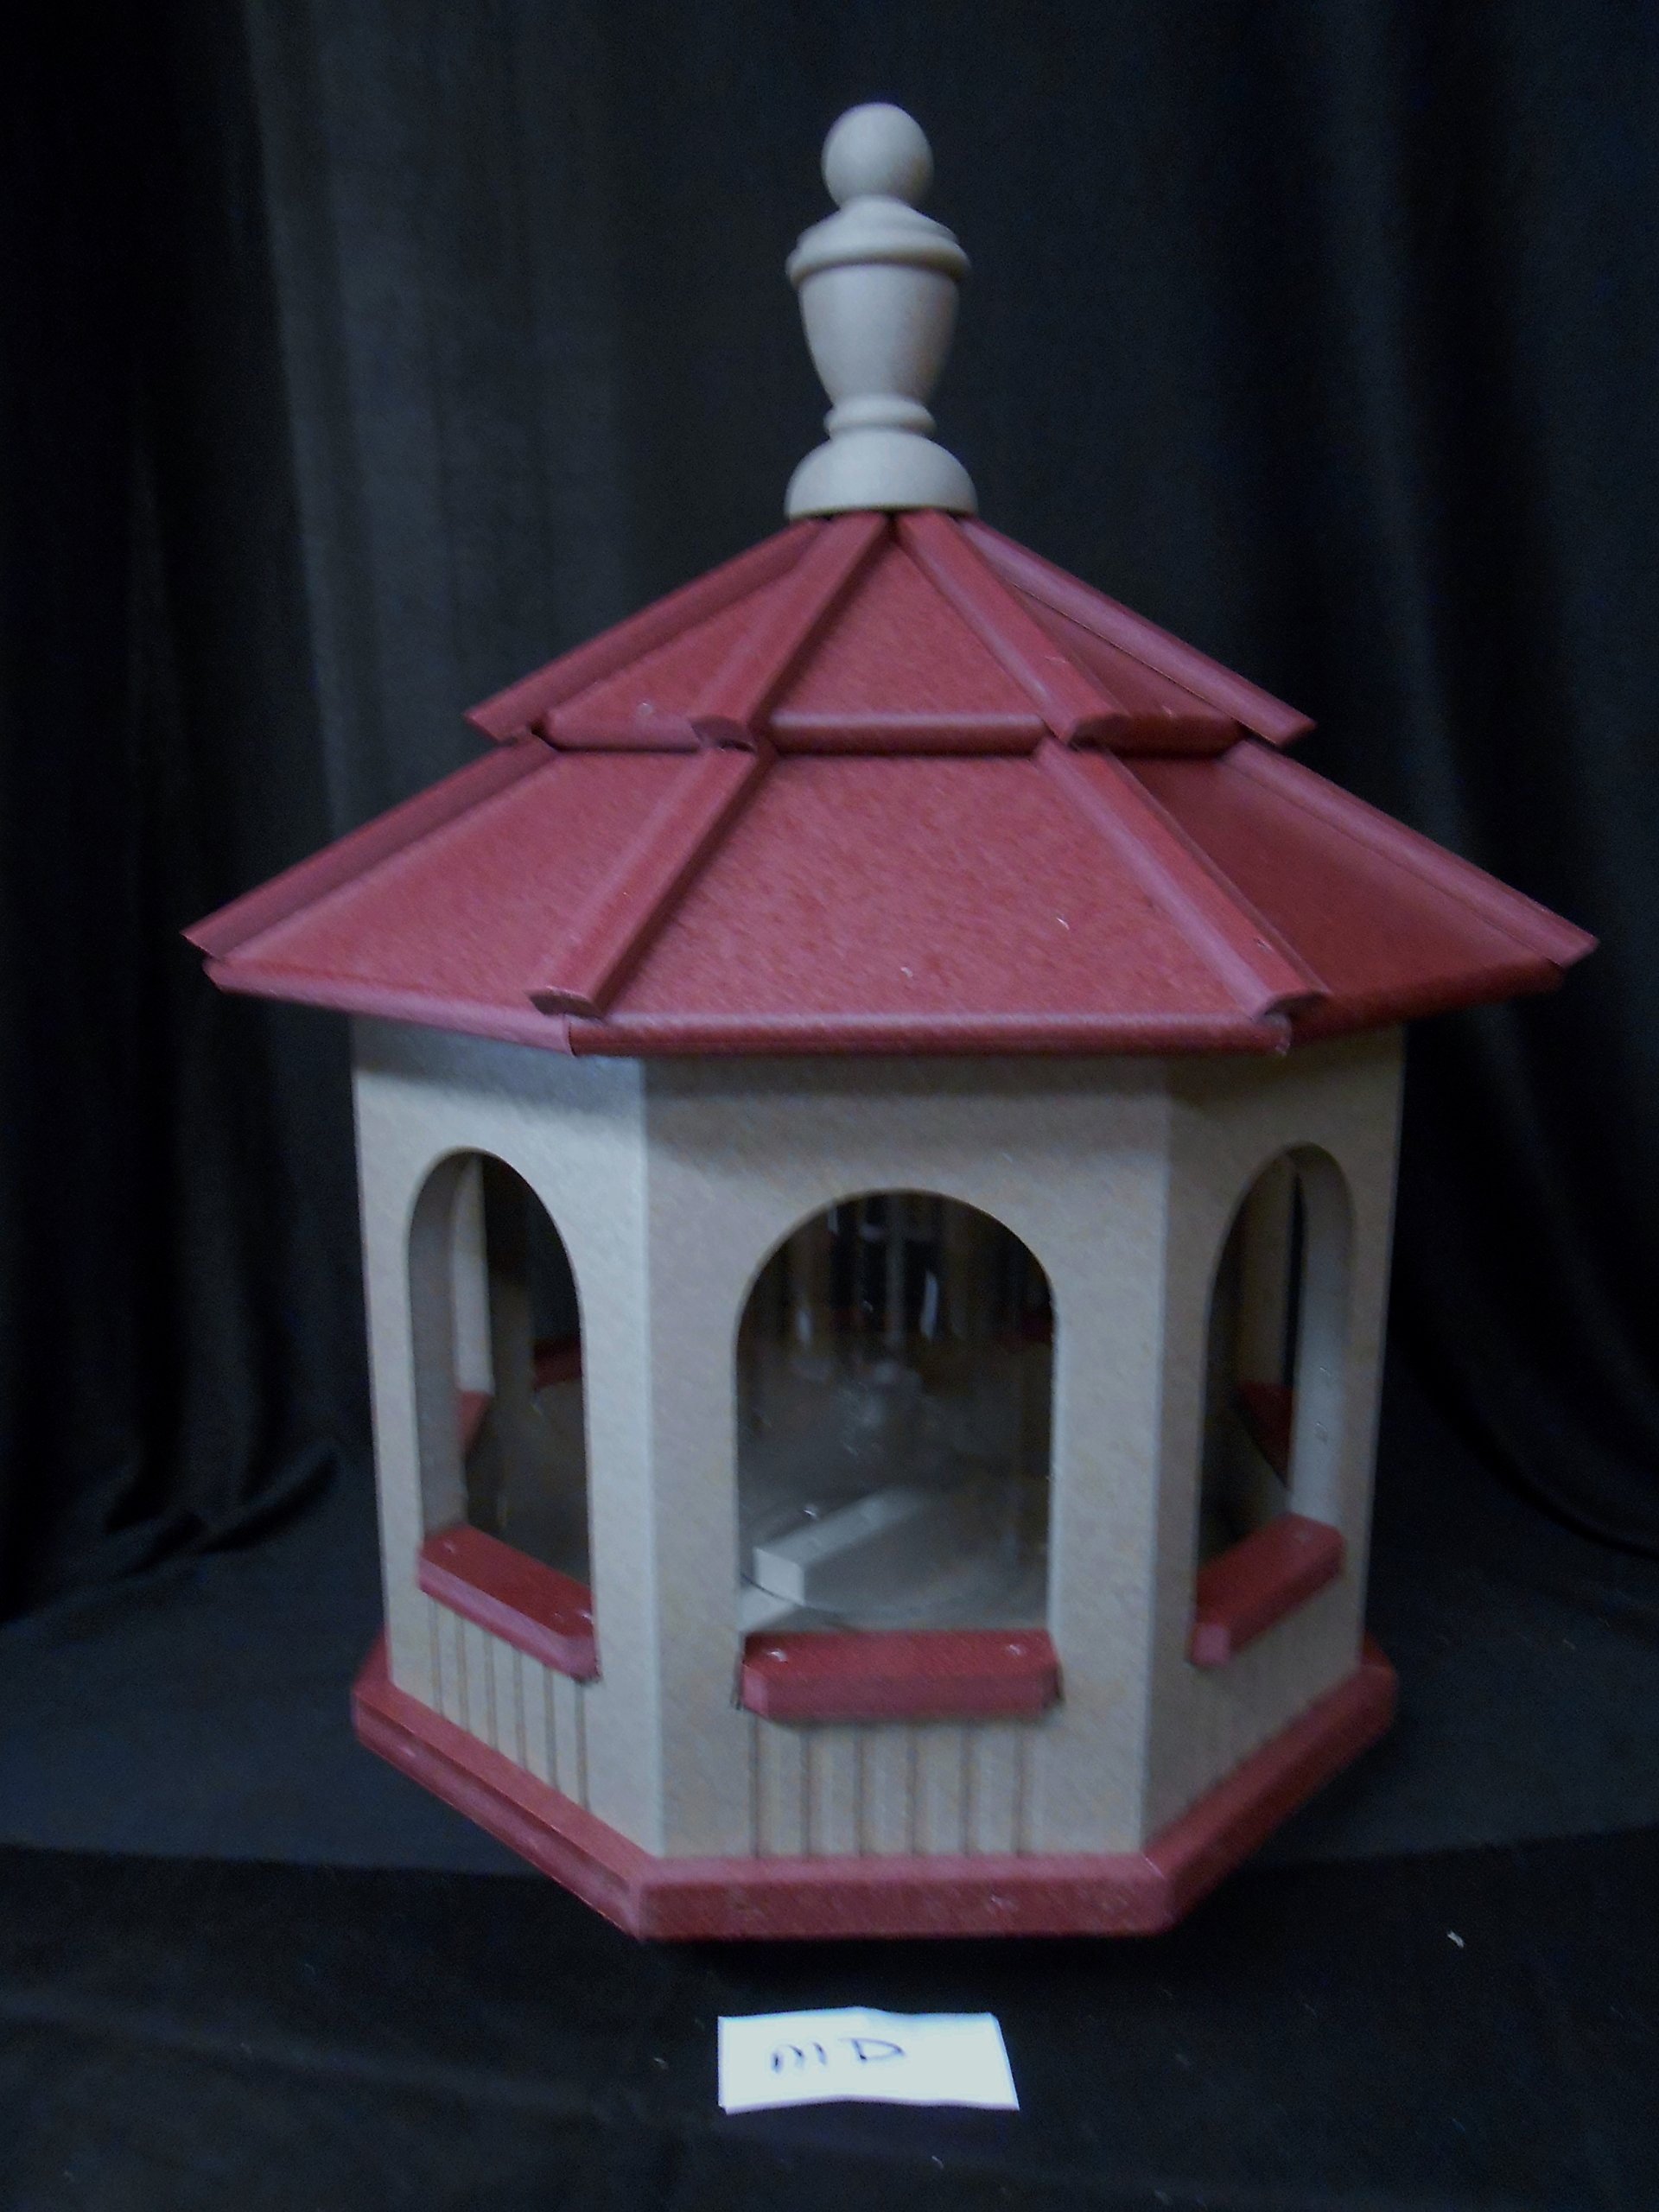 Vinyl Gazebo Bird Feeder Amish Homemade Handmade Handcrafted Clay and Red med